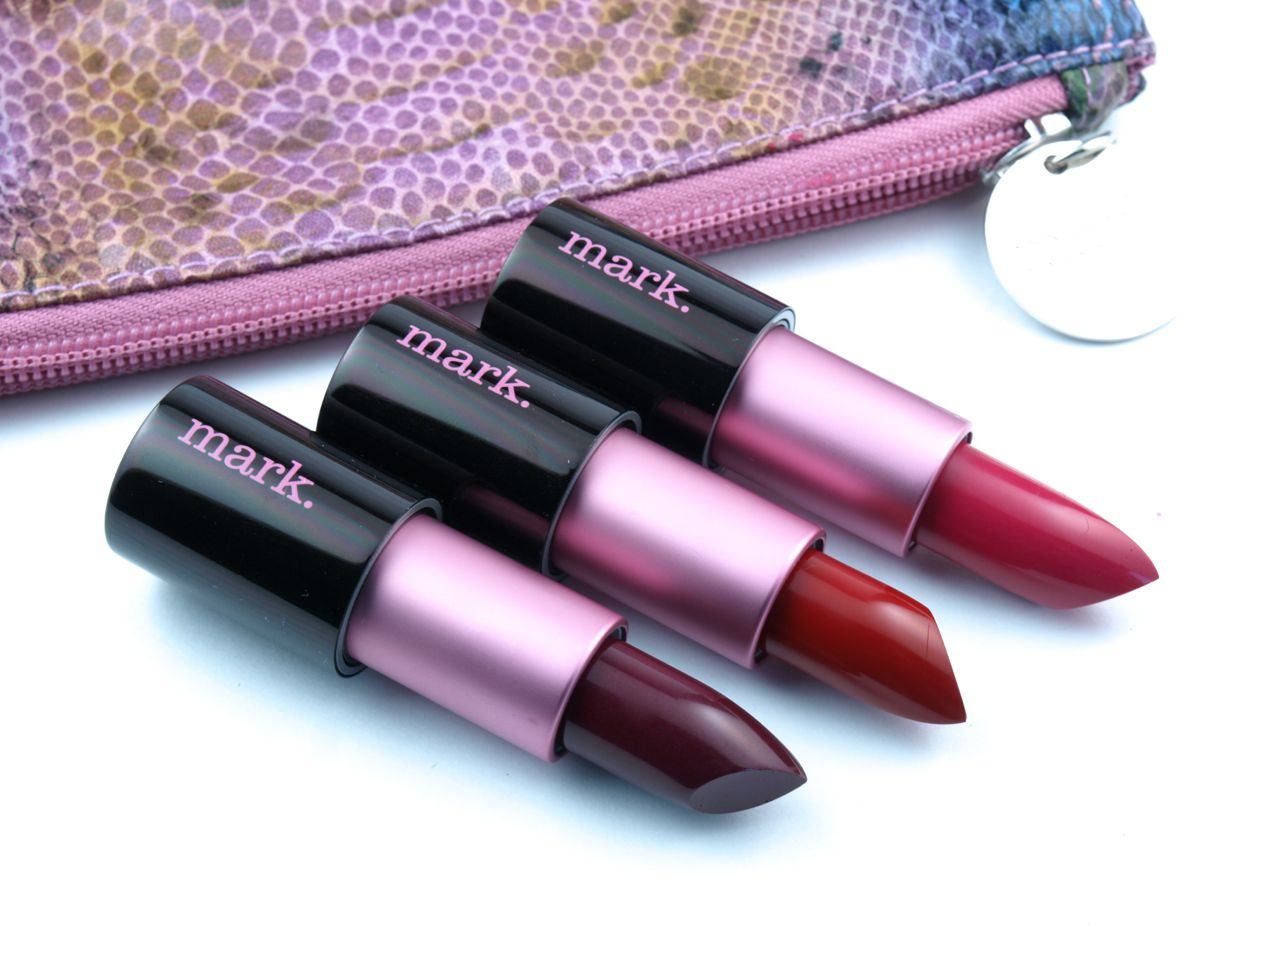 Mark. Fall 2015 Lipclick Matte Full Color Lipsticks: Review and Swatches